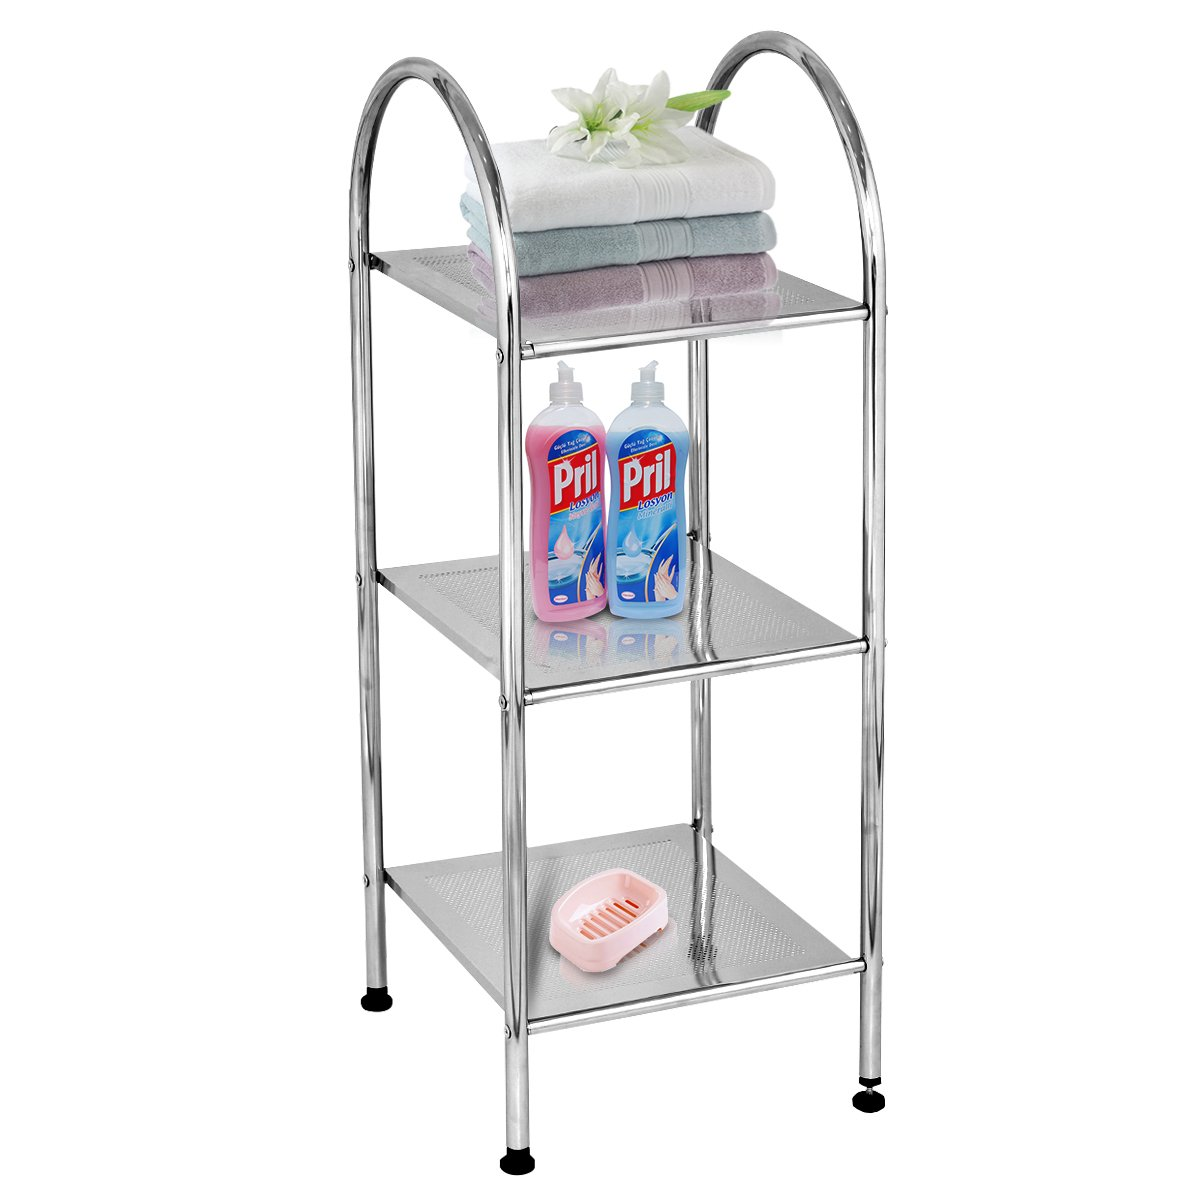 Costway 3 Tier Metal Storage Shelf Steel Stand W/Adjustable Feet Multi Purpose Rack Suitable for Garage Bathroom Kitchen Office Home (Silver)